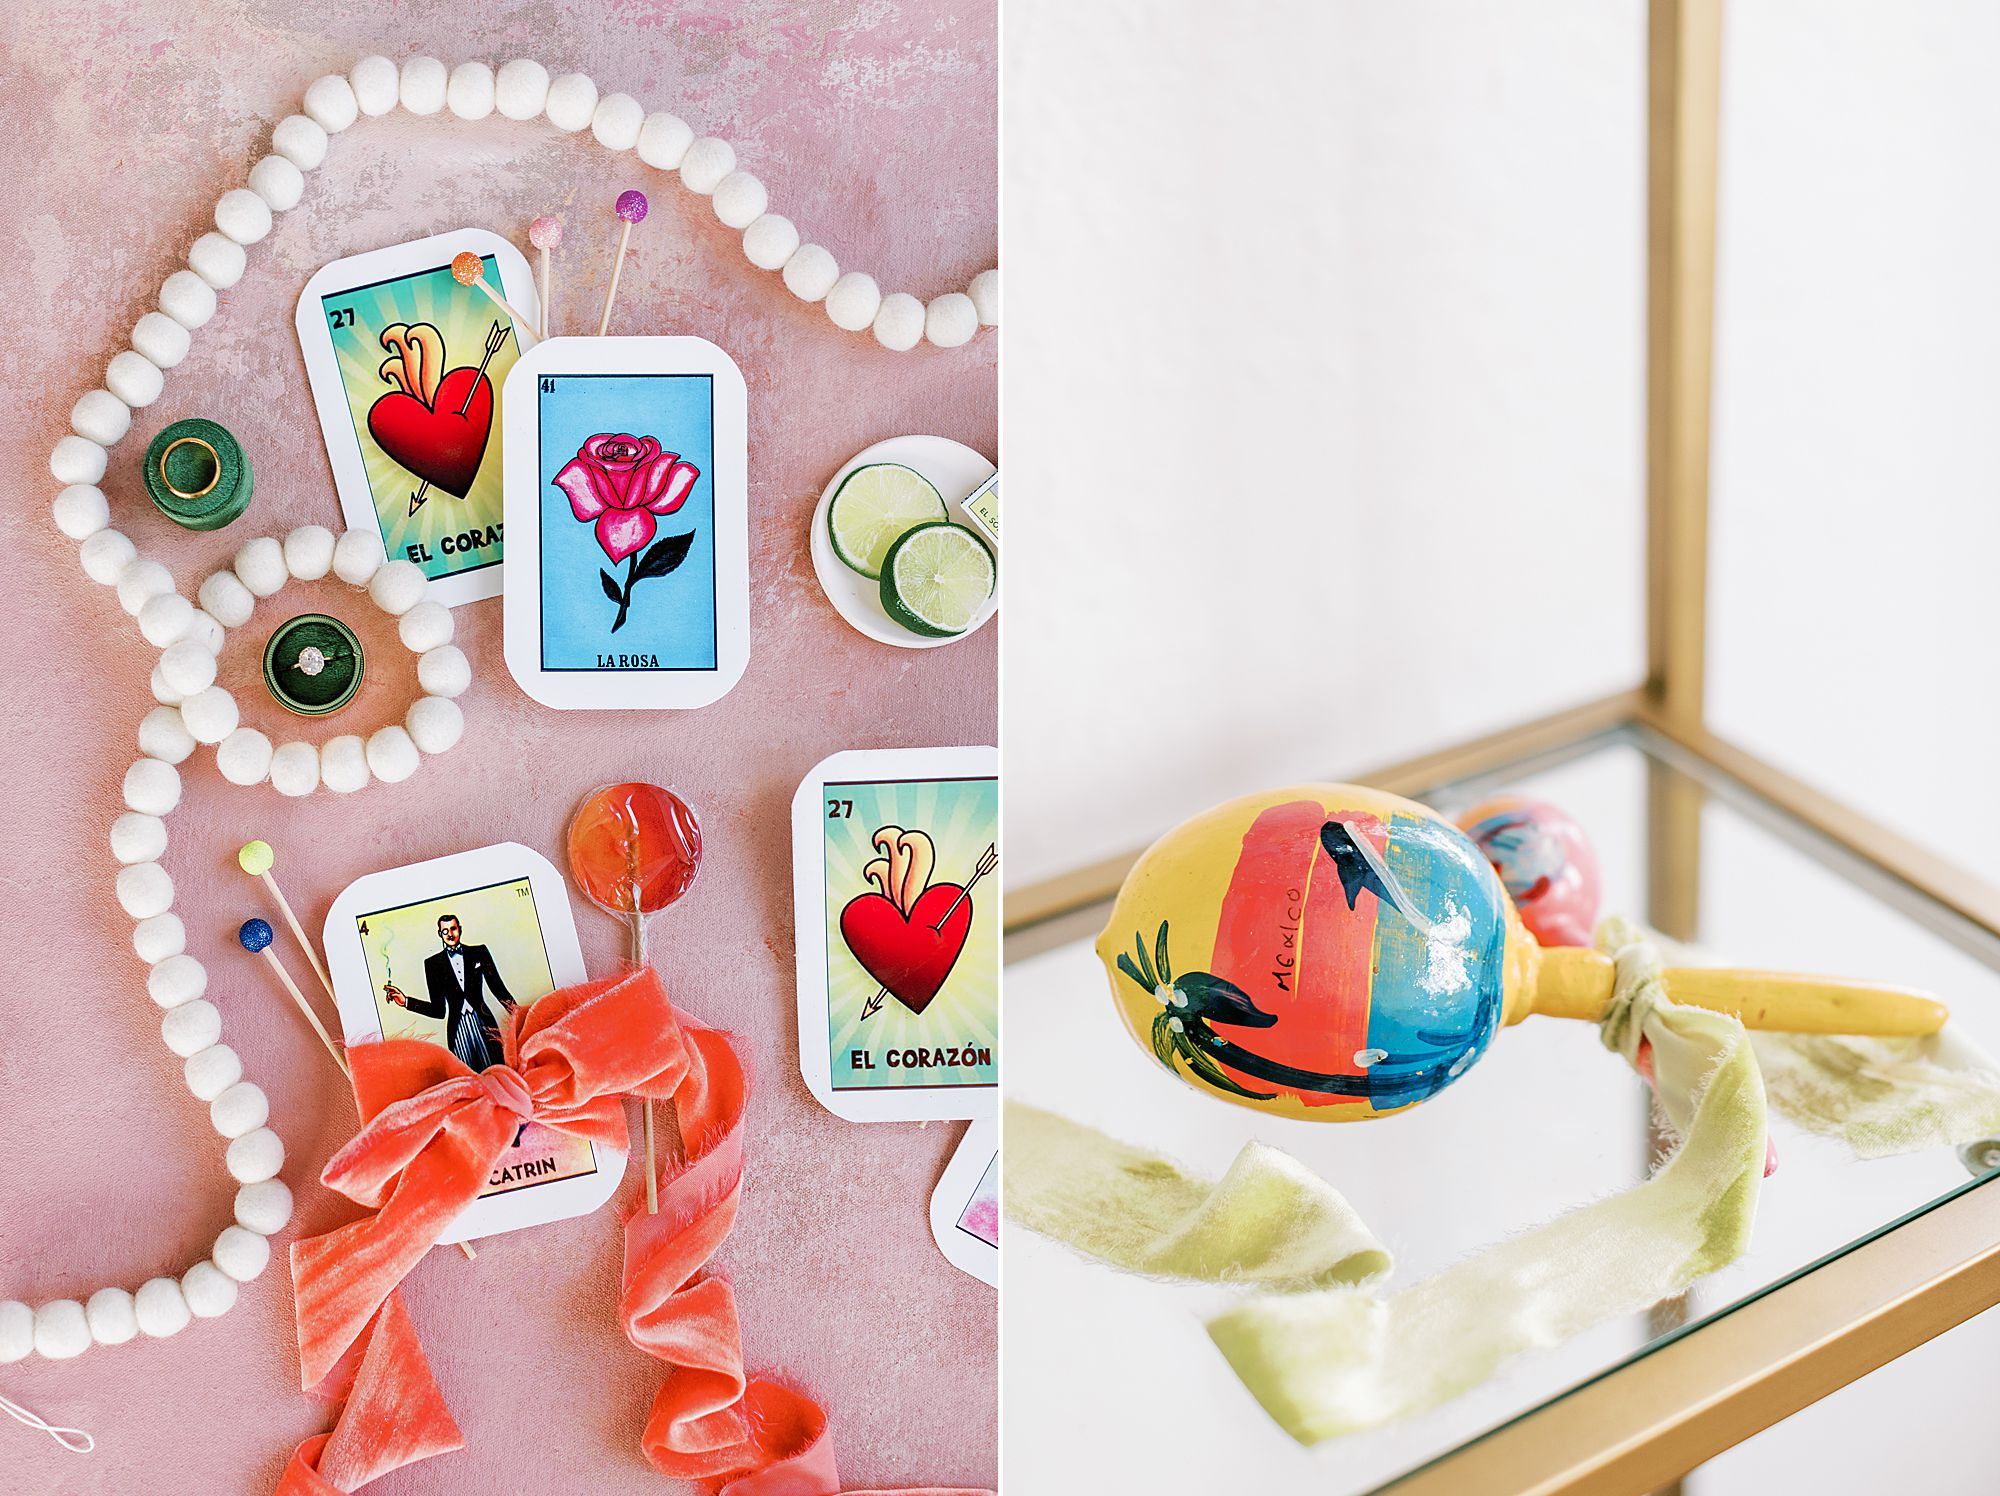 Cinco De Mayo Inspiration for Your FIesta - Party Crush Studio and Ashley Baumgartner_0028.jpg